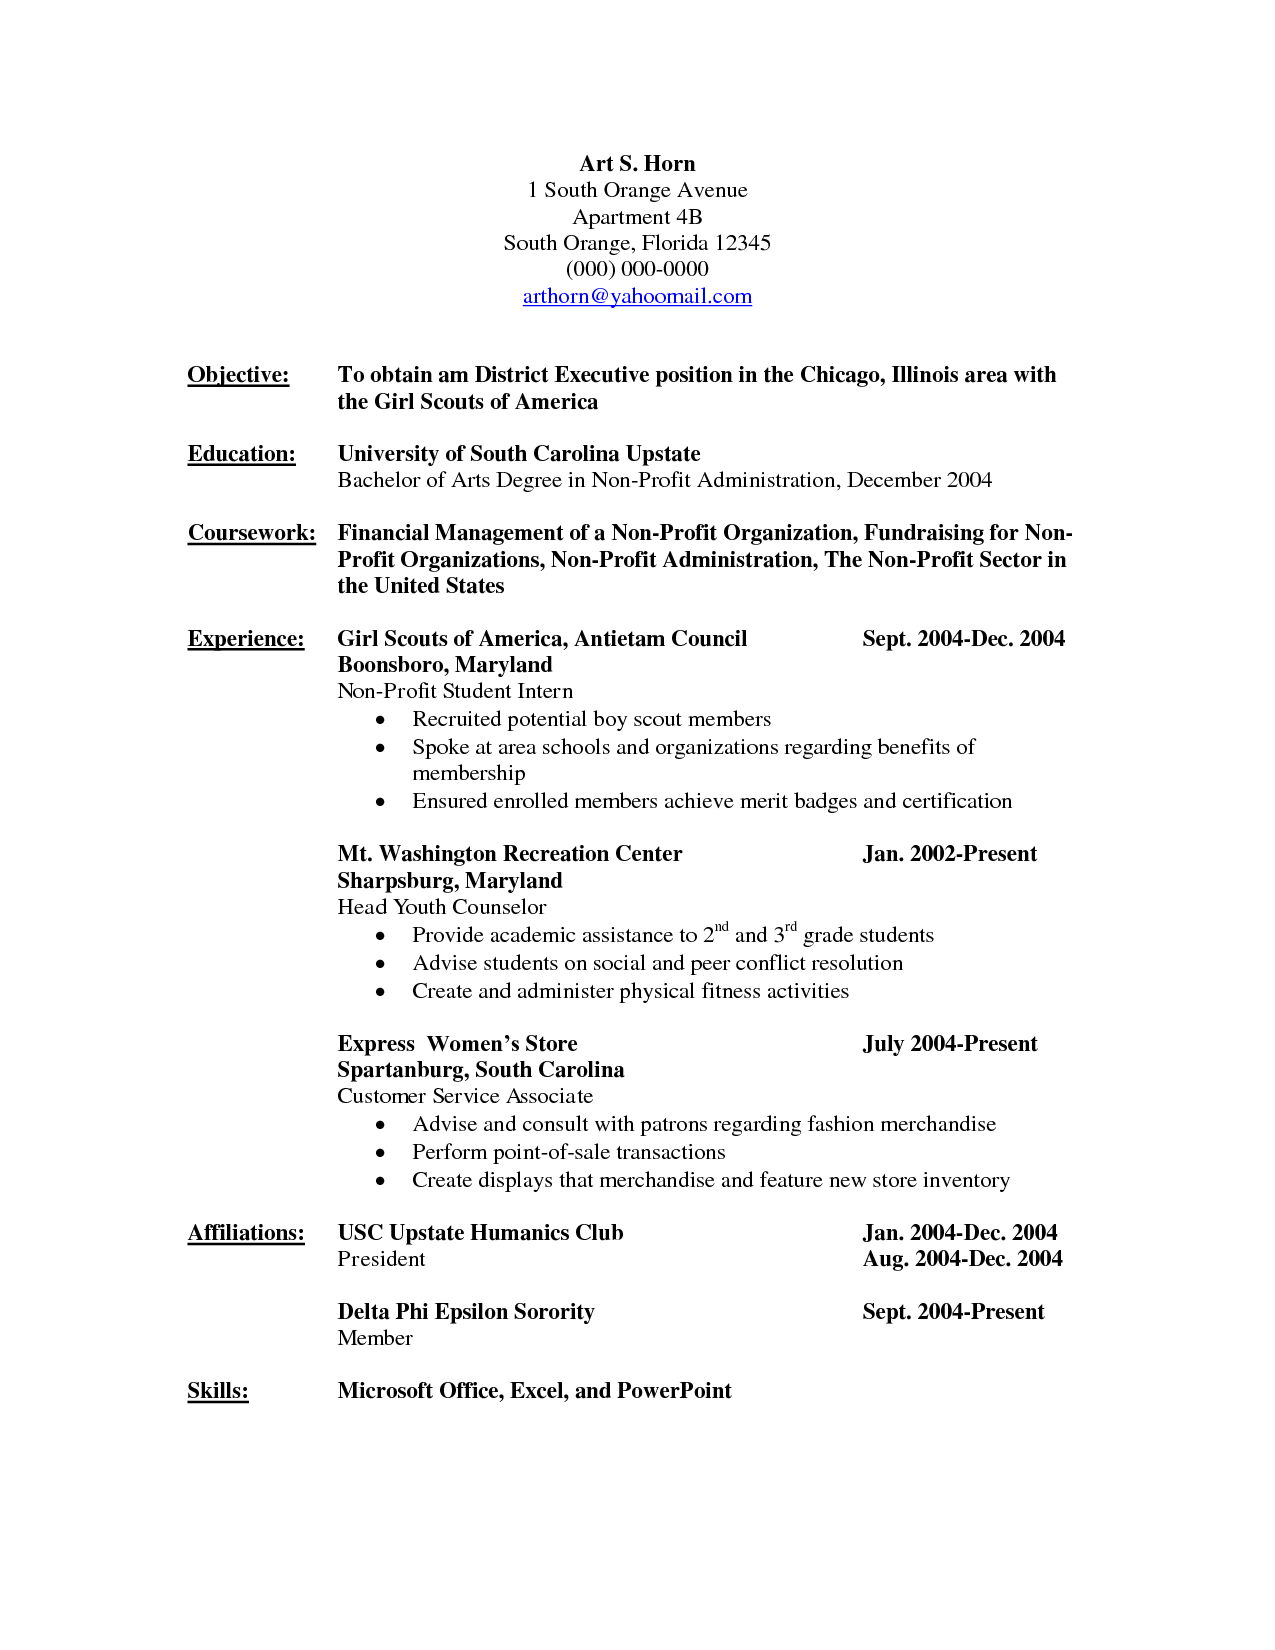 Non Chronological Chronological resume template, Resume